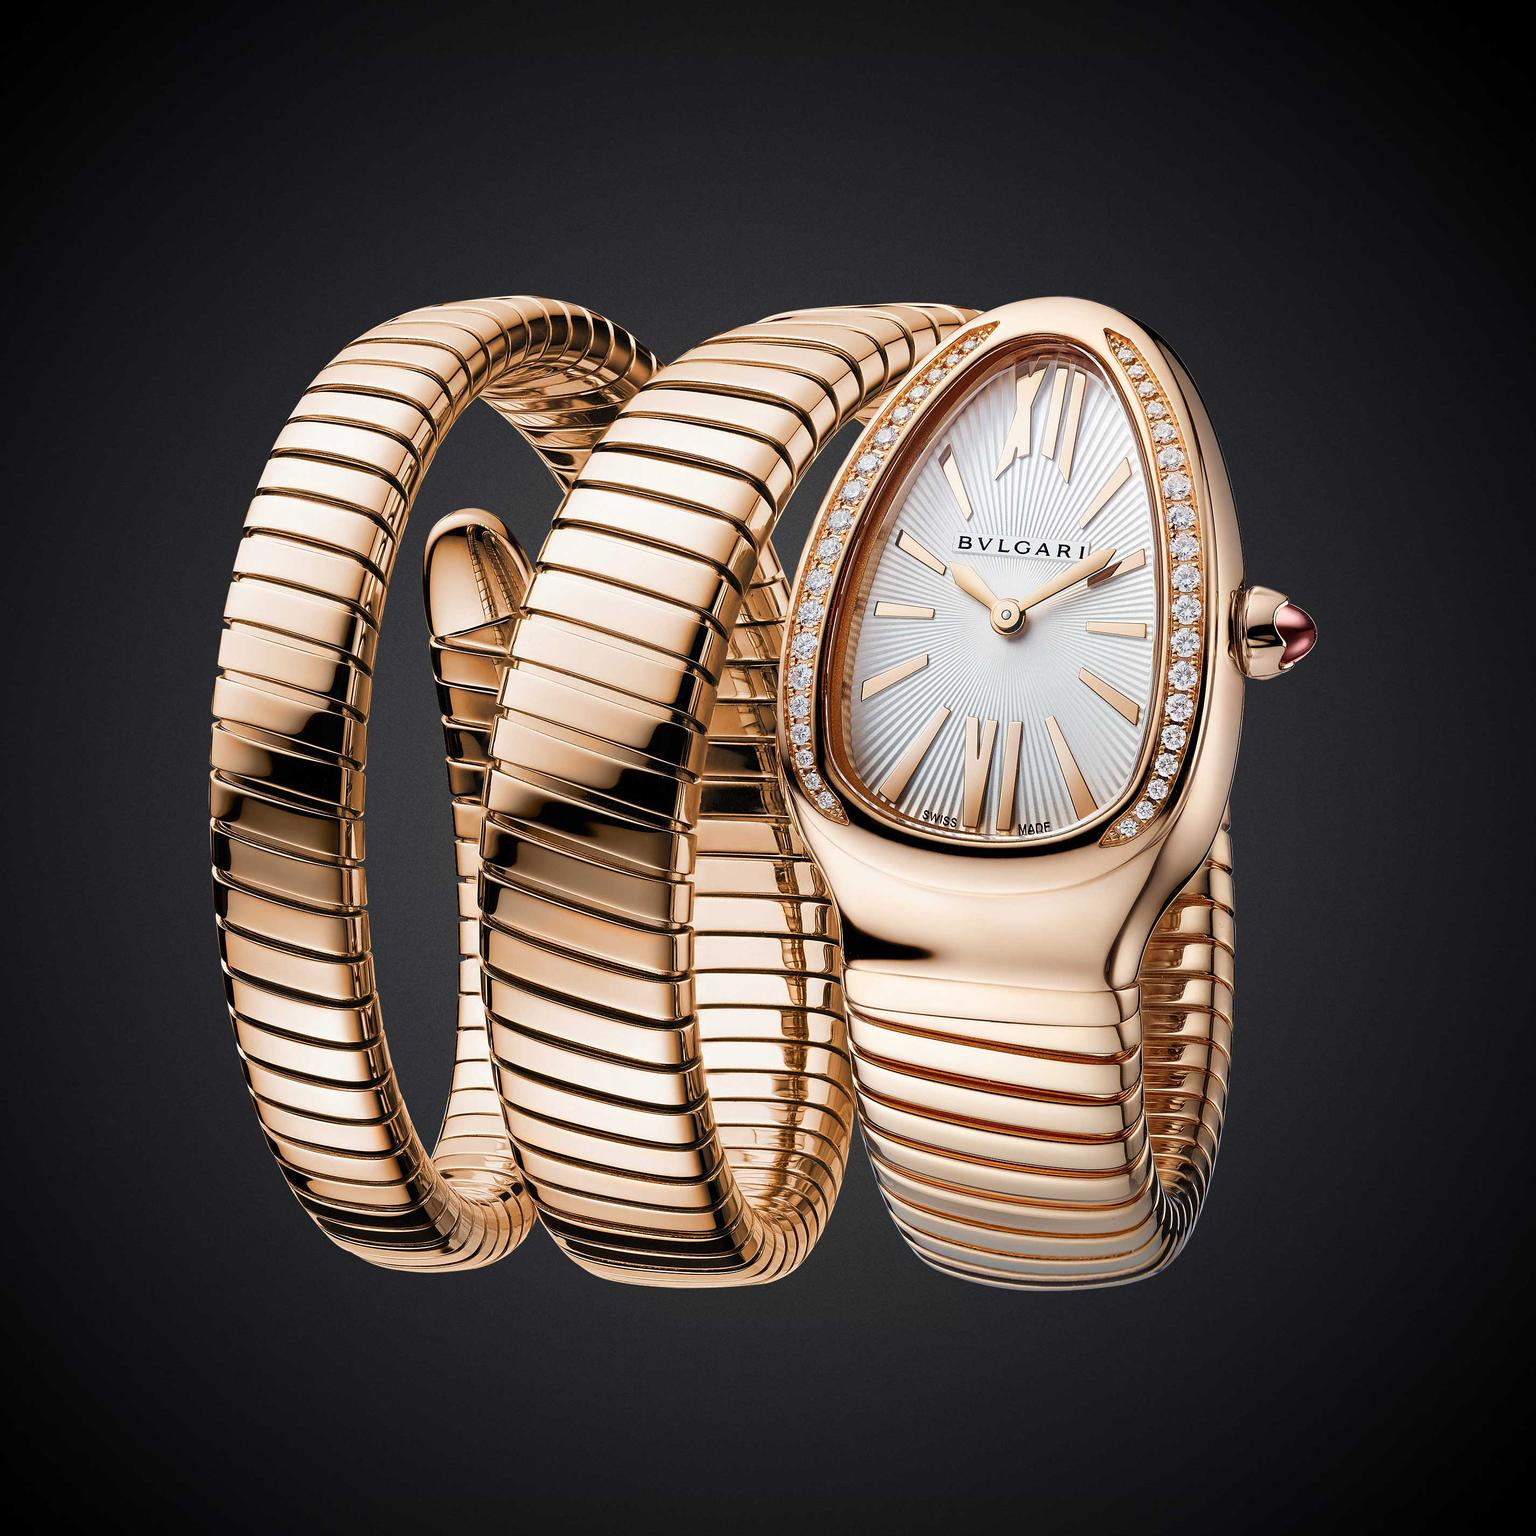 Bulgari Serpenti Tubogas double coil ladies watch in pink gold